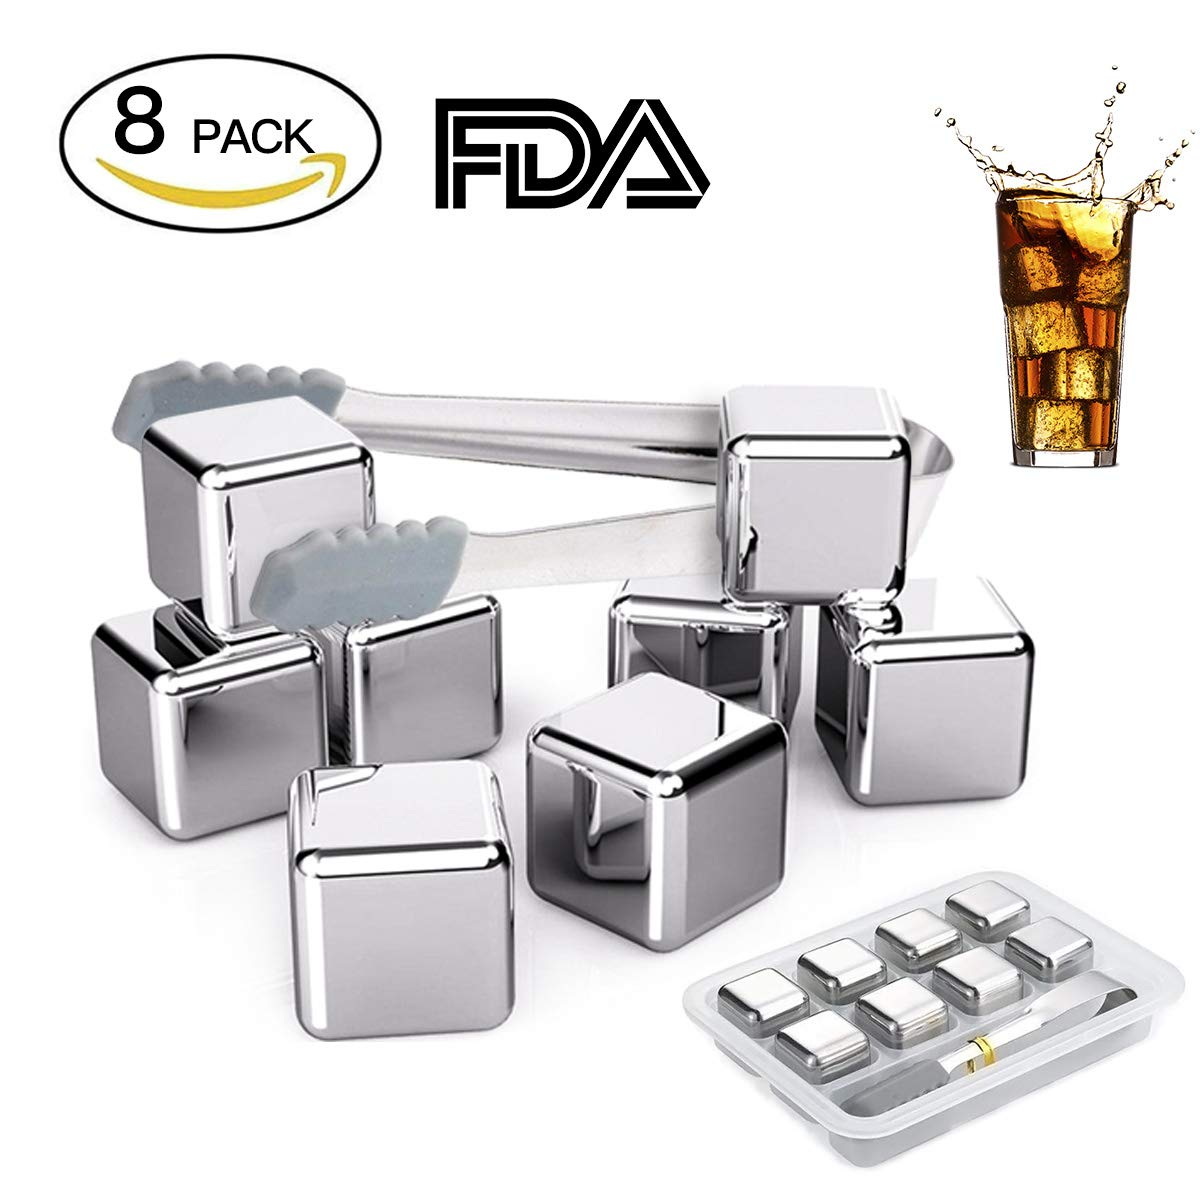 Fangie Whiskey Steel Ice Cubes,Set of 8 Stainless Steel Reusable Ice Cubes Chilling Stones with Tongs for Whiskey WineStones Chilling Rocks Keep Your Drink Cold Longer Whiskey Gifts for Men Whisky Reu